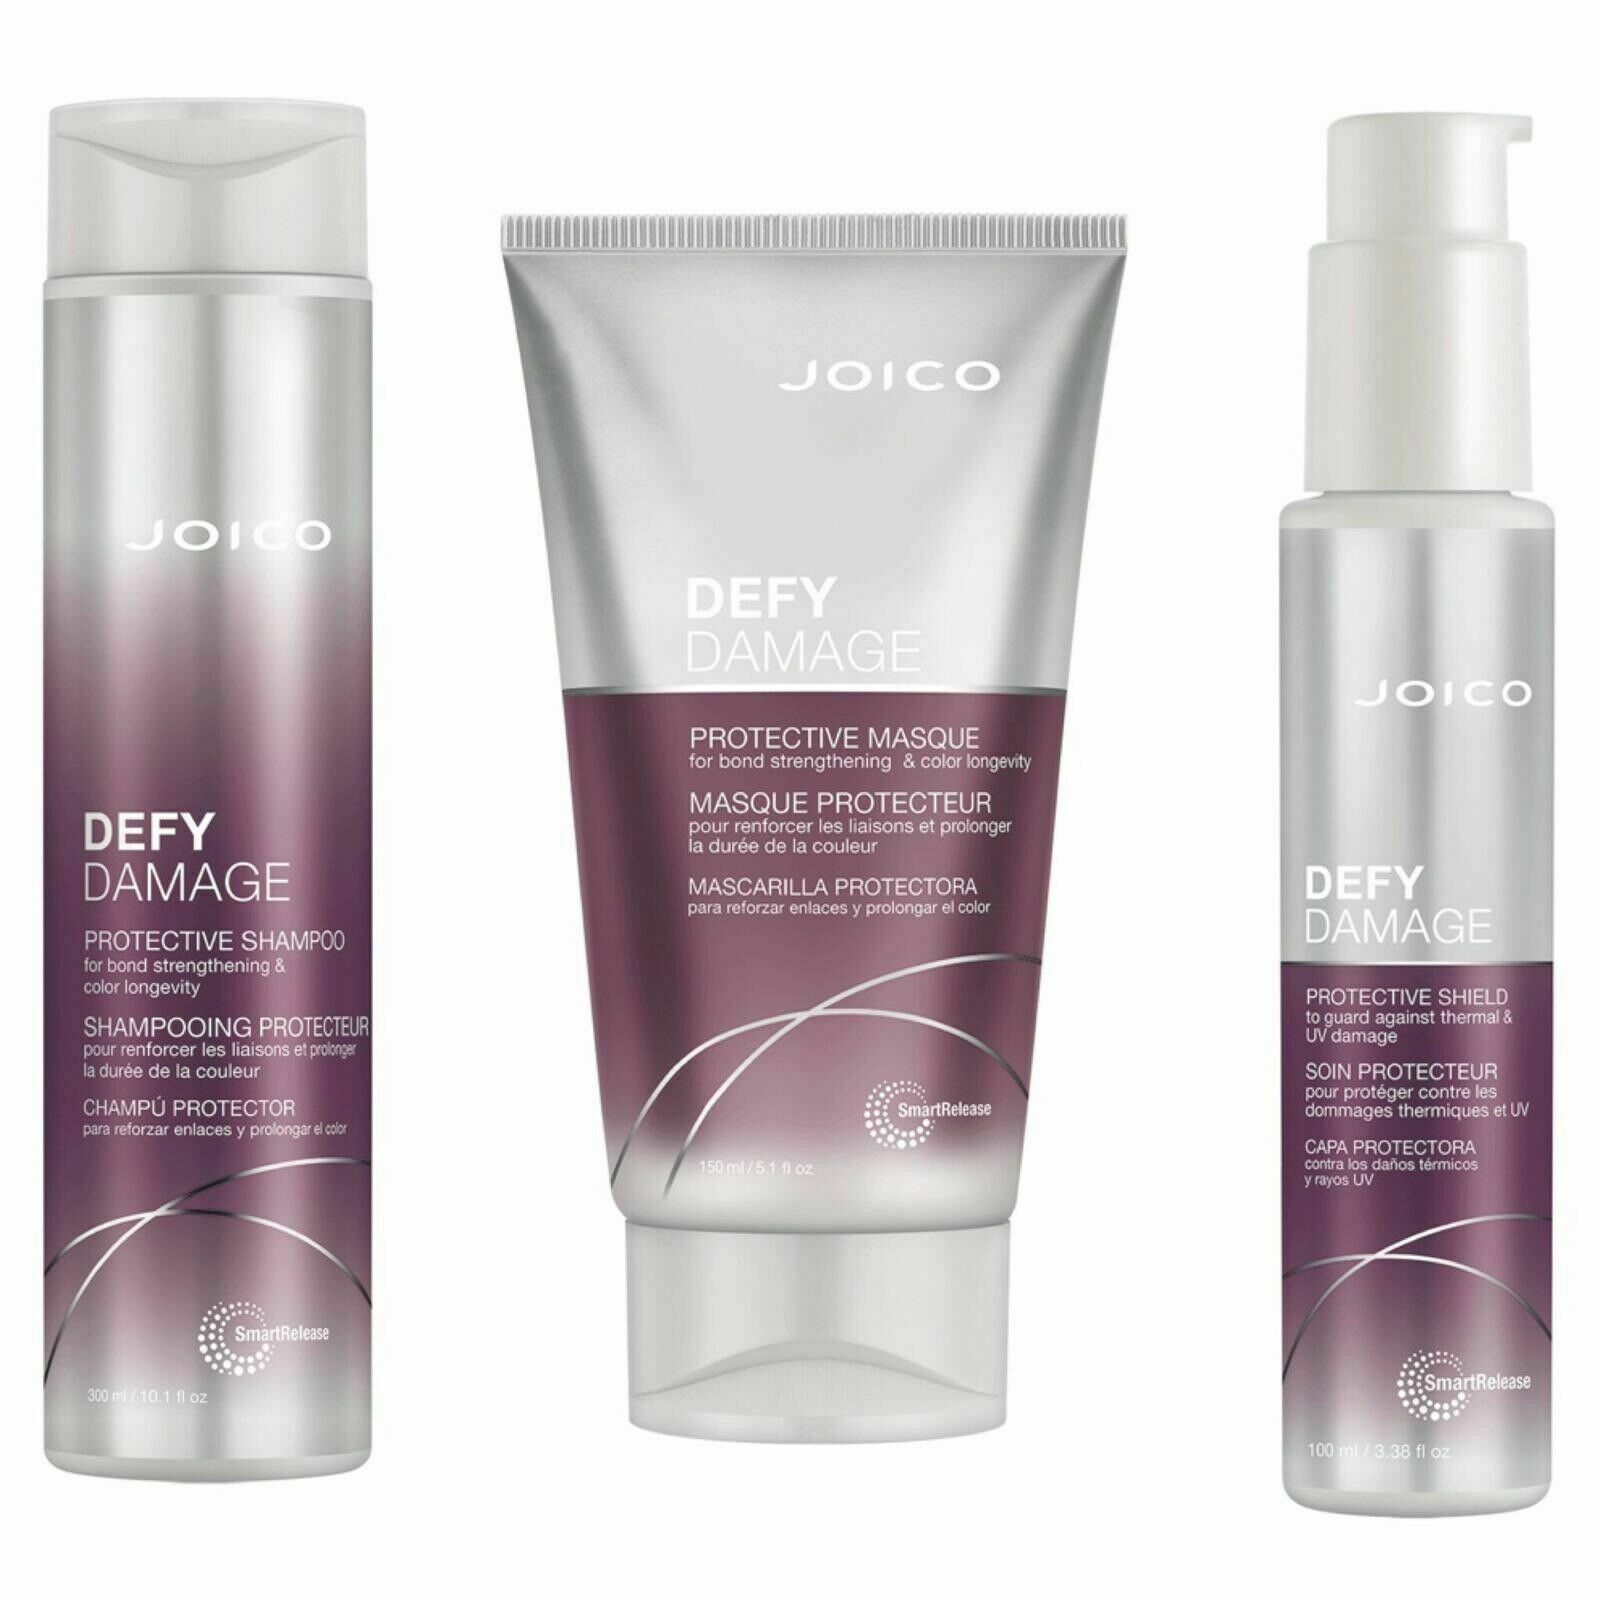 Joico Defy Damage Protective Shampoo, Masque & Thermal Prote